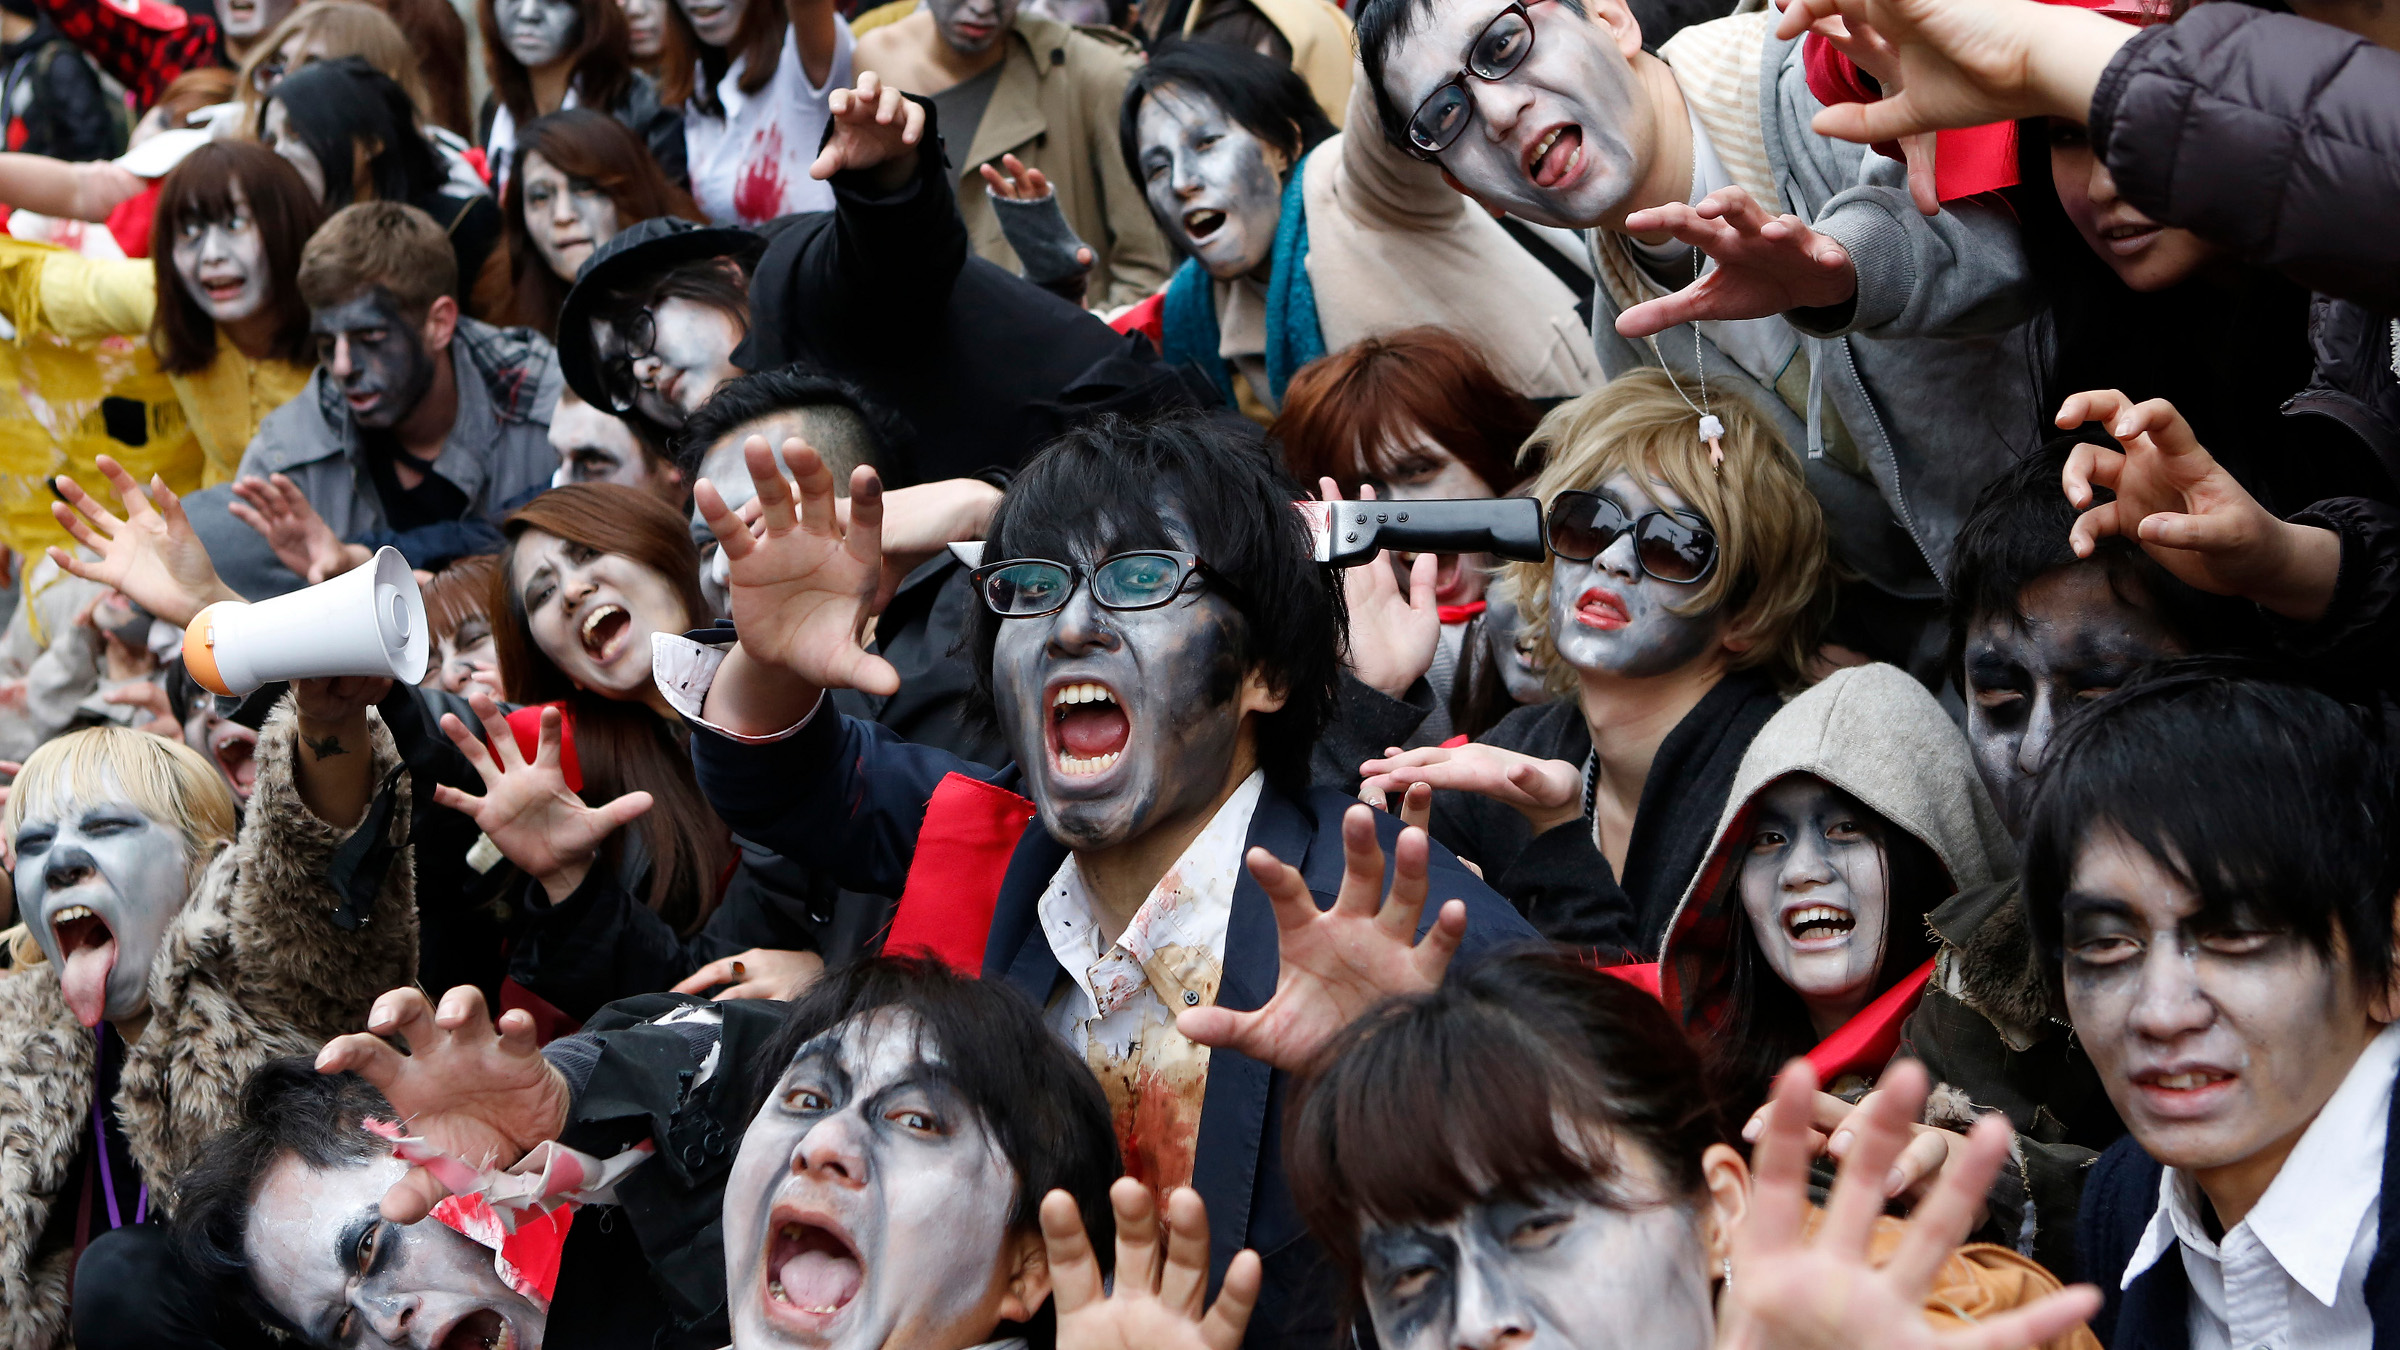 People, dressed as zombies, pose for photos after the Roppongi Zombie Walk in Tokyo March 31, 2013. About 50 people dressed up as zombies early evening on Sunday, catching the attention of pedestrians on the streets of Tokyo's downtown Roppongi district.